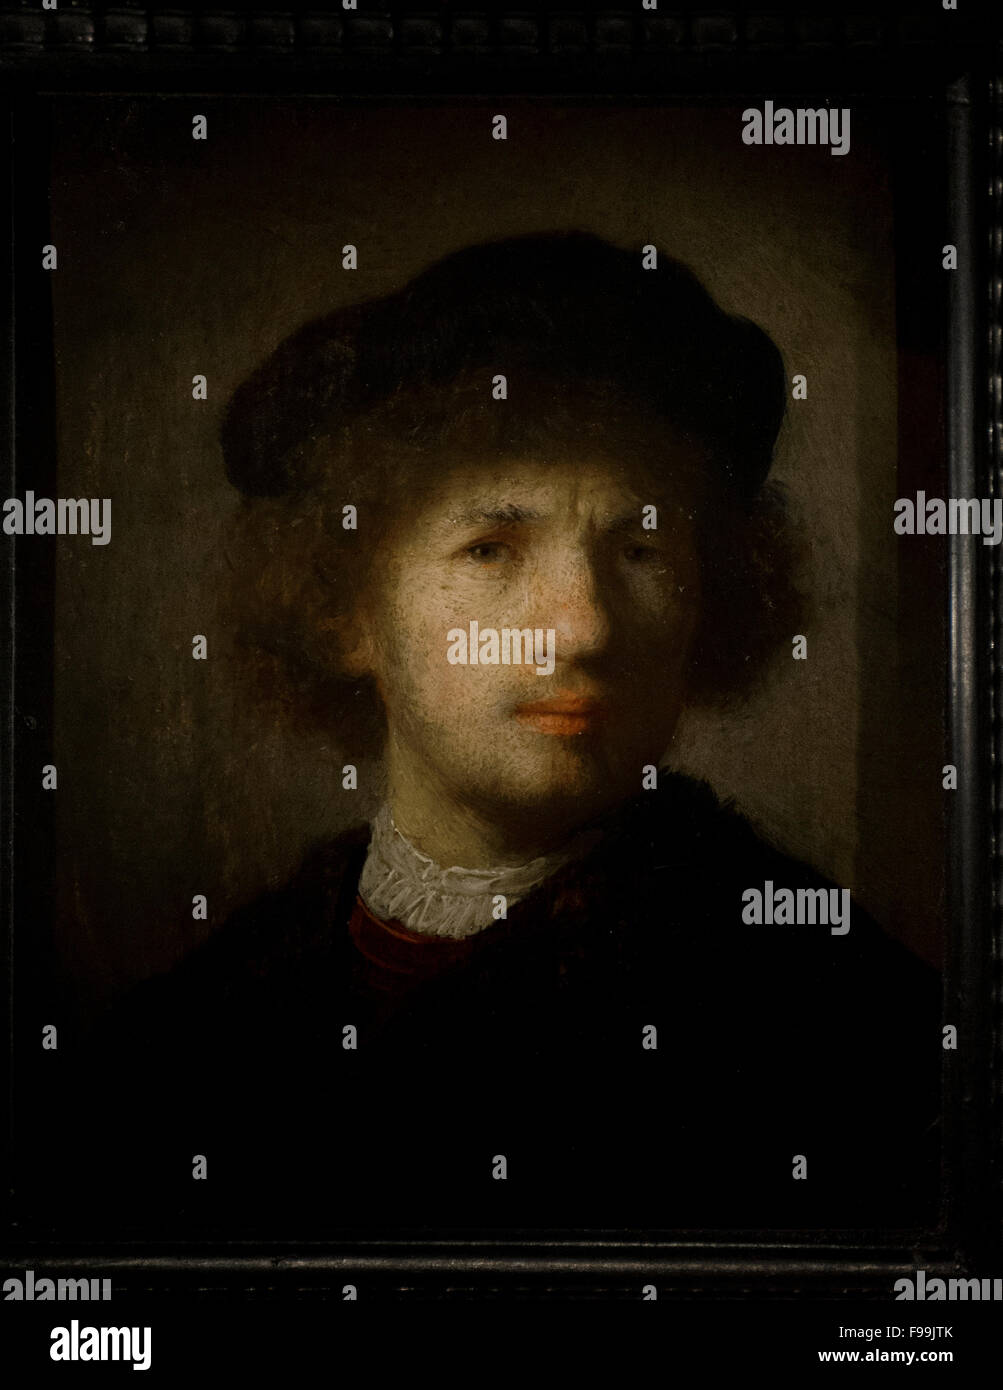 Rembrandt Harmenszoon van Rijn (1606-1669). Dutch painter. Selfportrait, 1630. National Museum. Stockholm. Sweden. - Stock Image